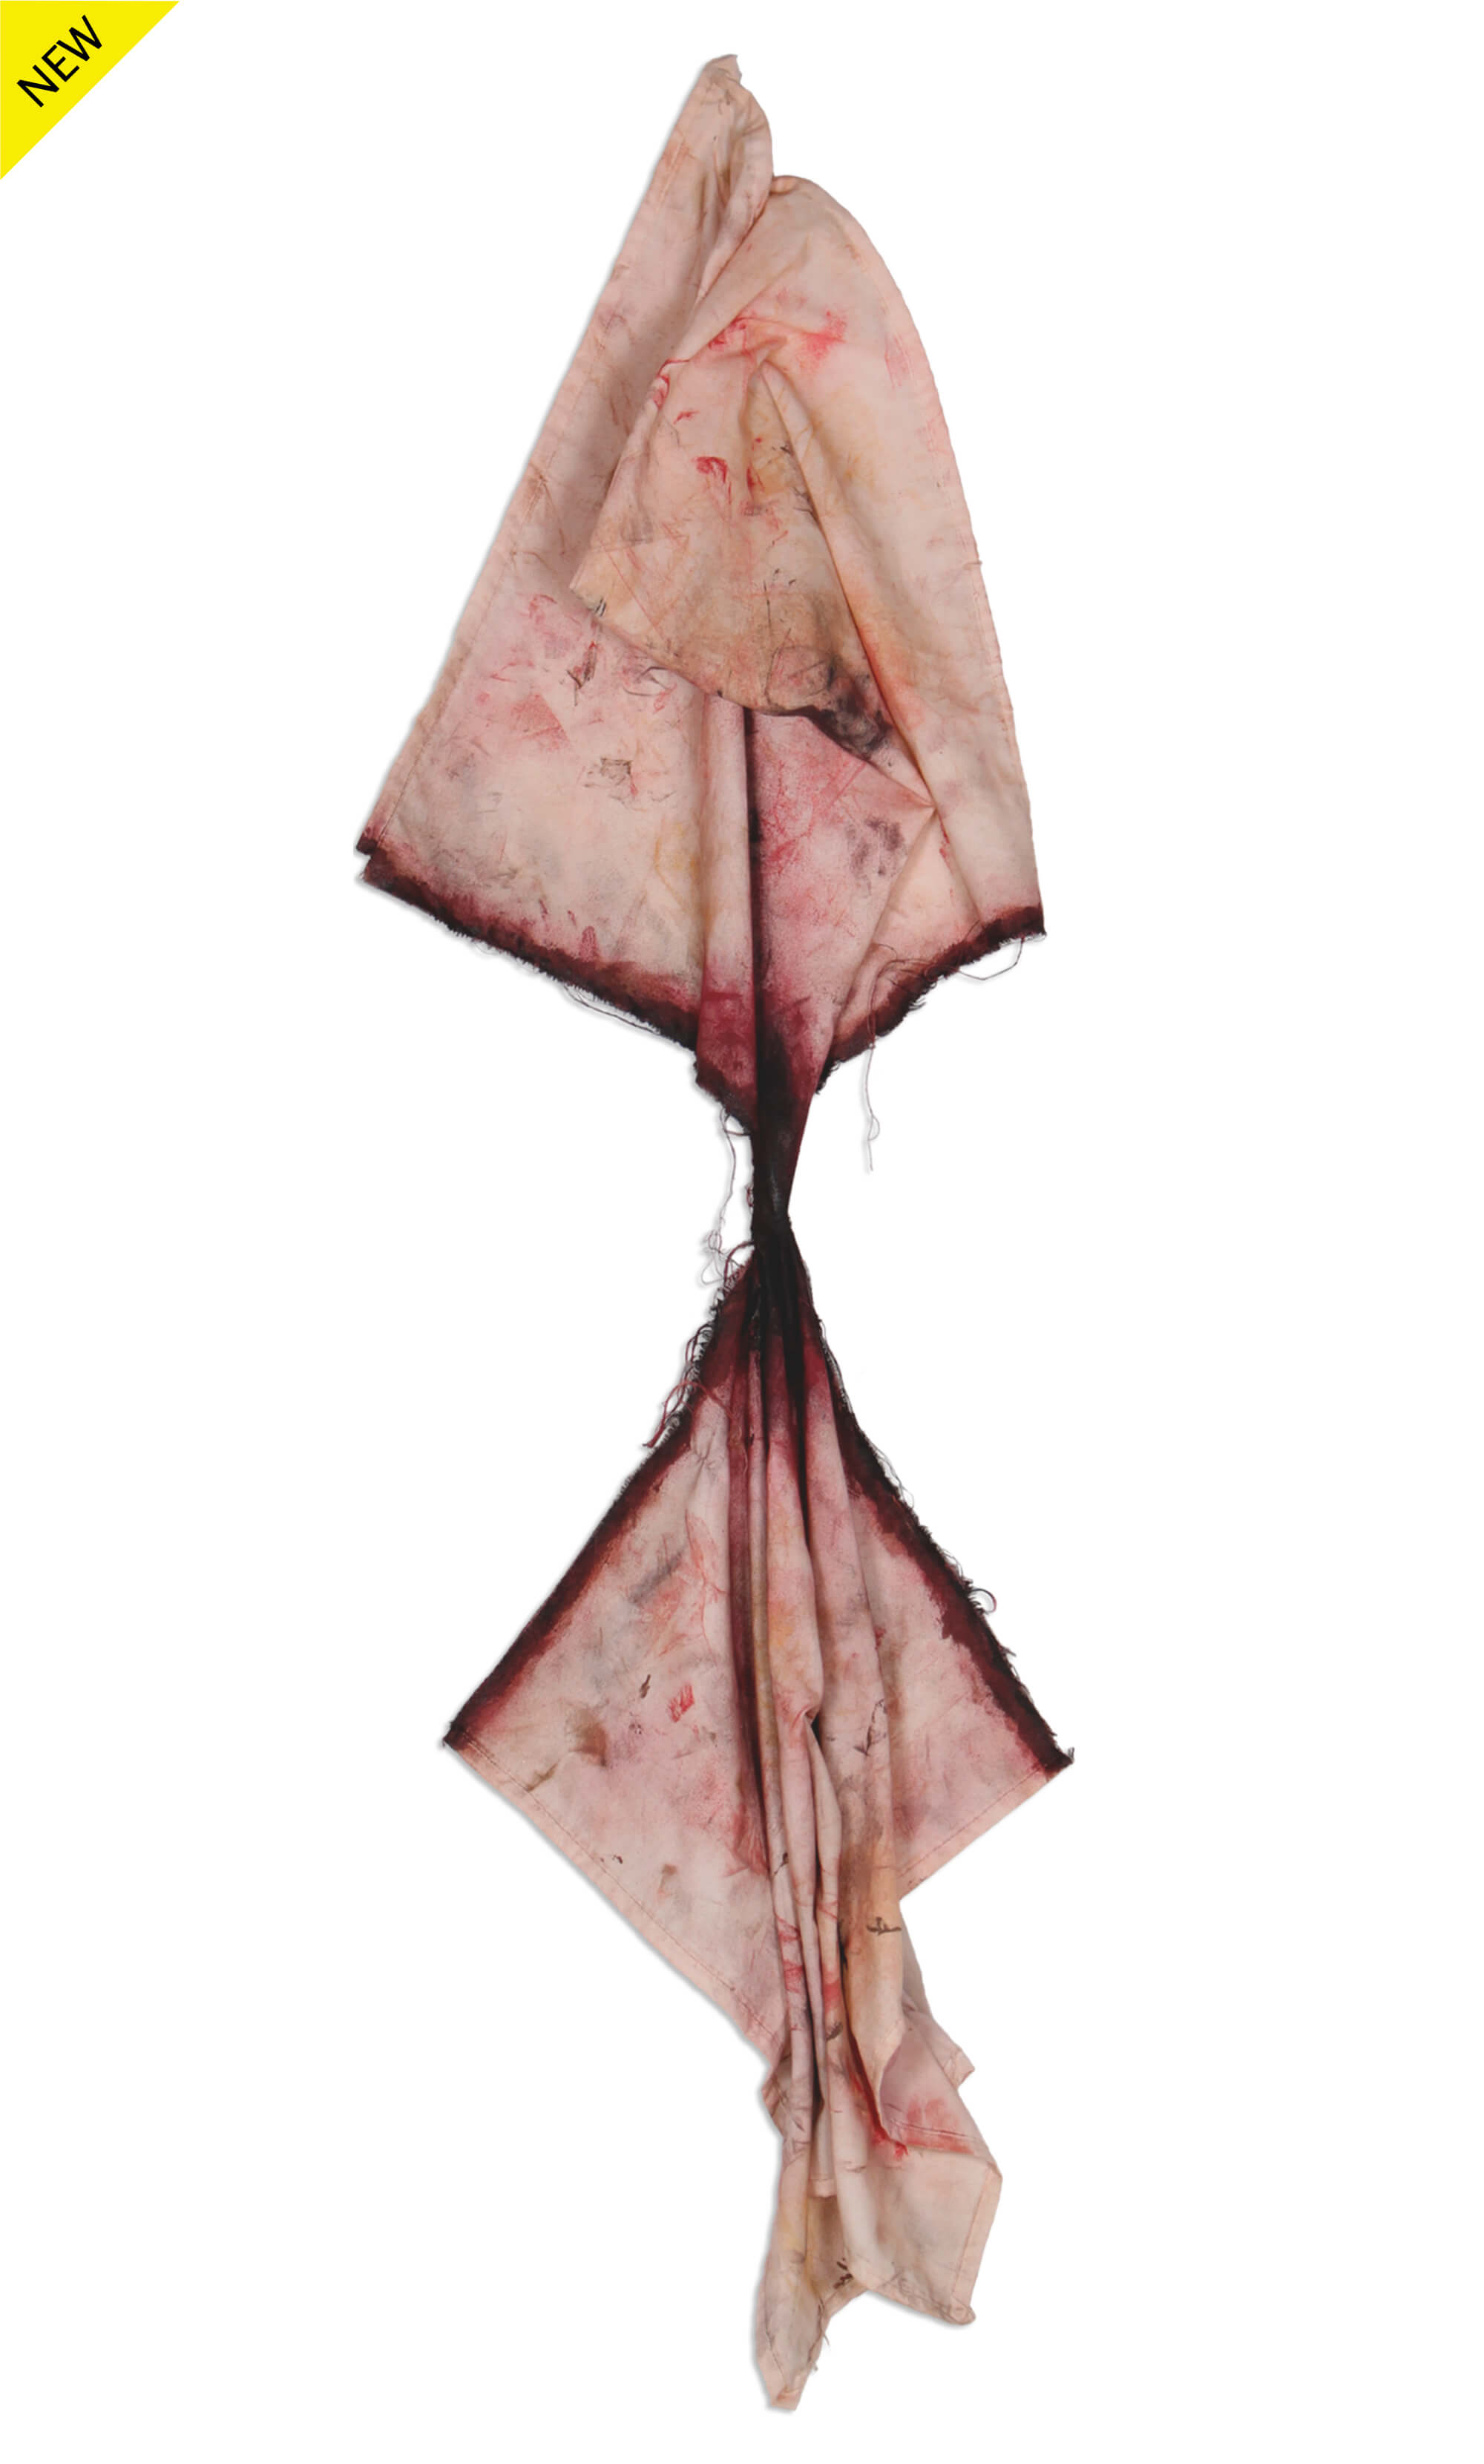 Mixed media of a hanged cloth painted with makeup featuring two squid tail-like shapes connected with a very thing stretchout and dark section in the middle symbolizing detachment by Diana N. Collazo Hernández